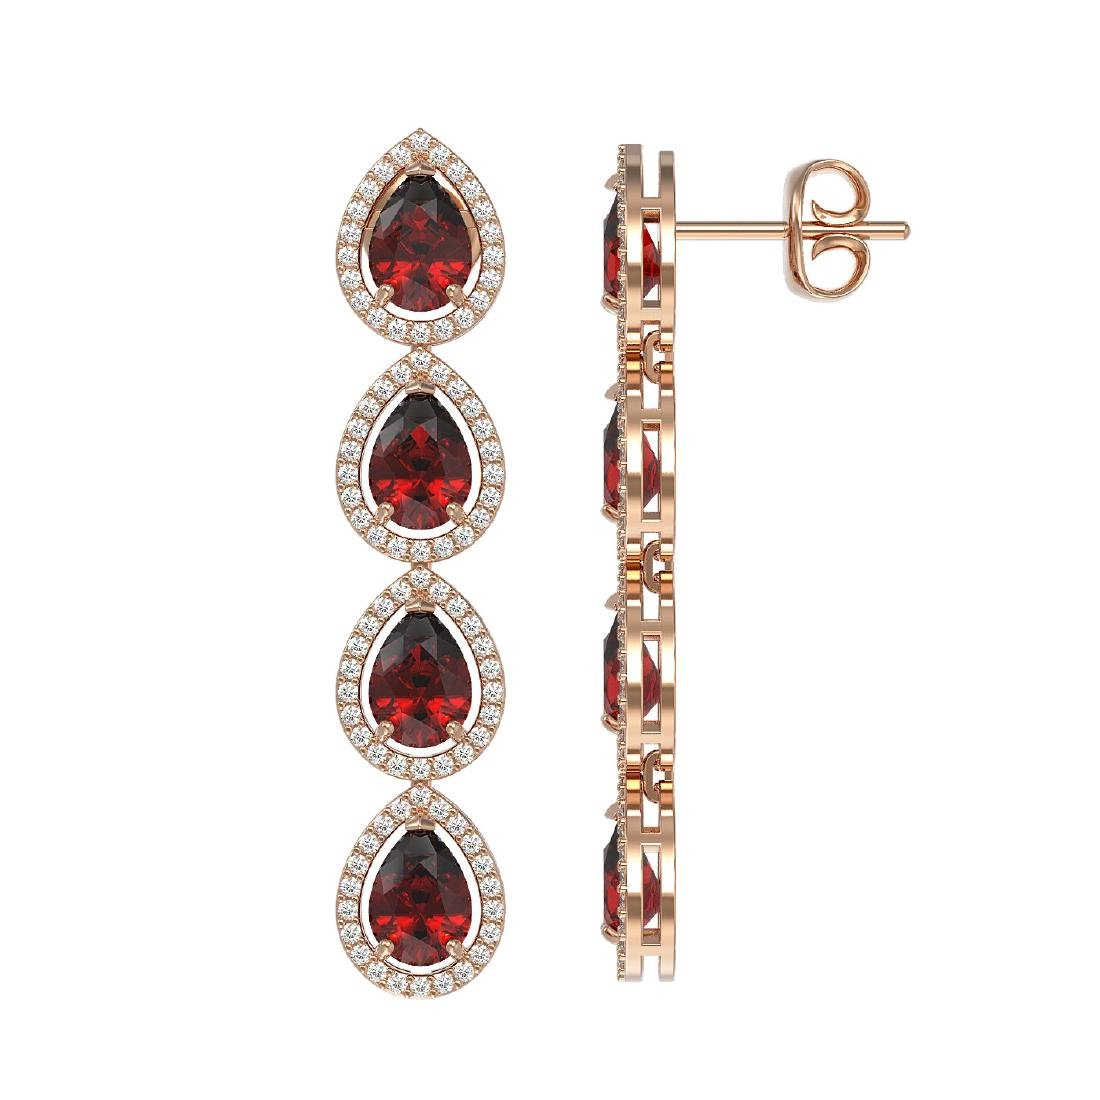 8.2 CTW Garnet & Diamond Halo Earrings 10K Rose Gold - 2